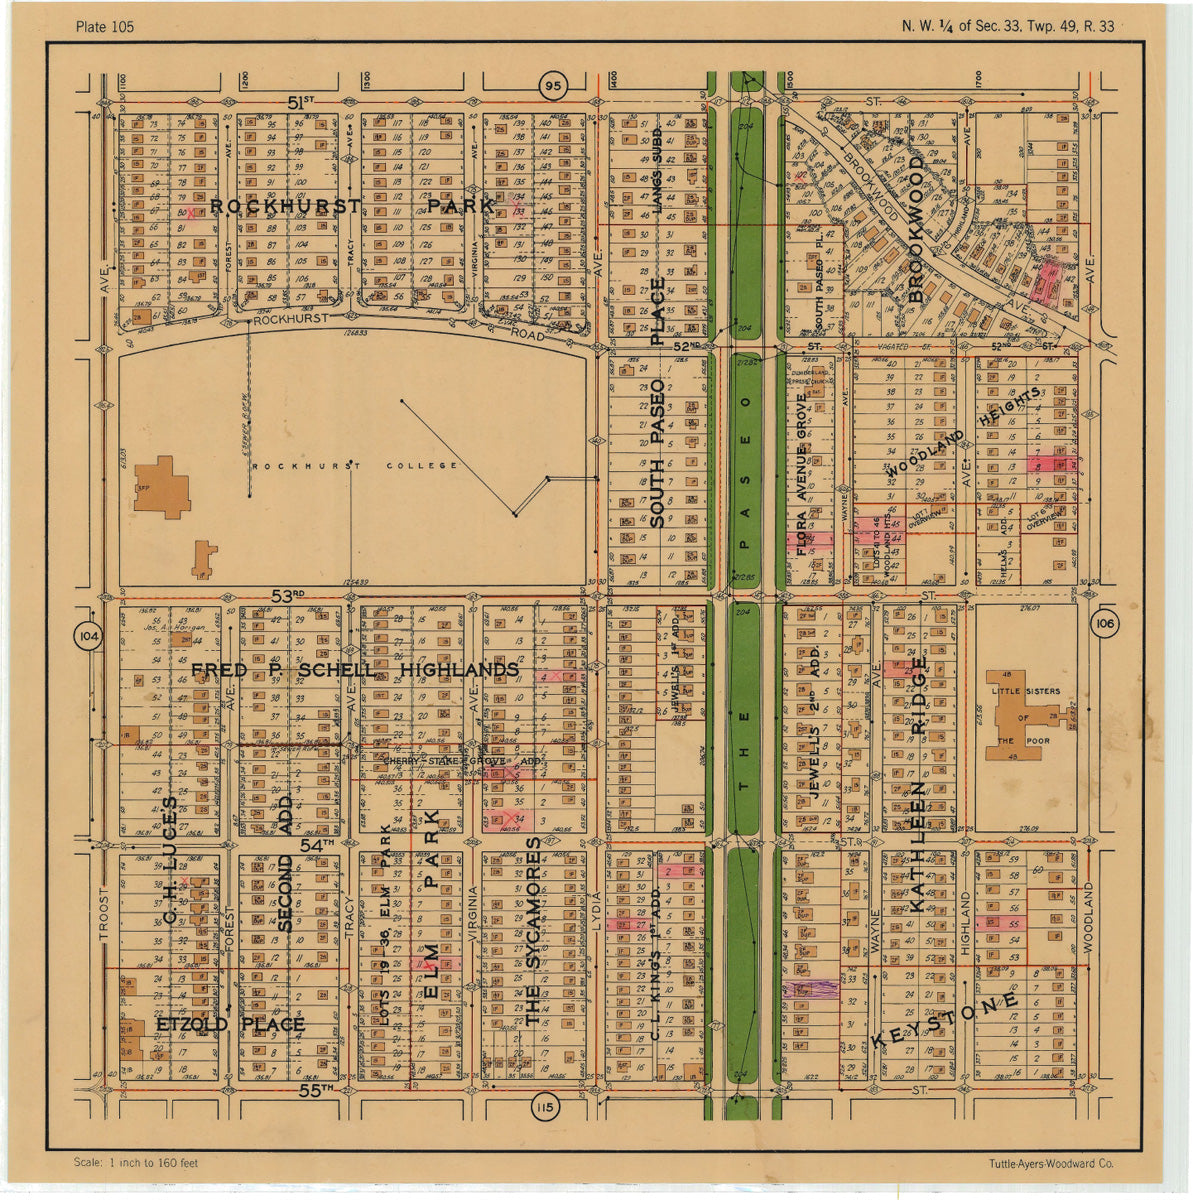 Kansas City 1925 Neighborhood Map - Plate #105 51st-55th Troost-Woodland